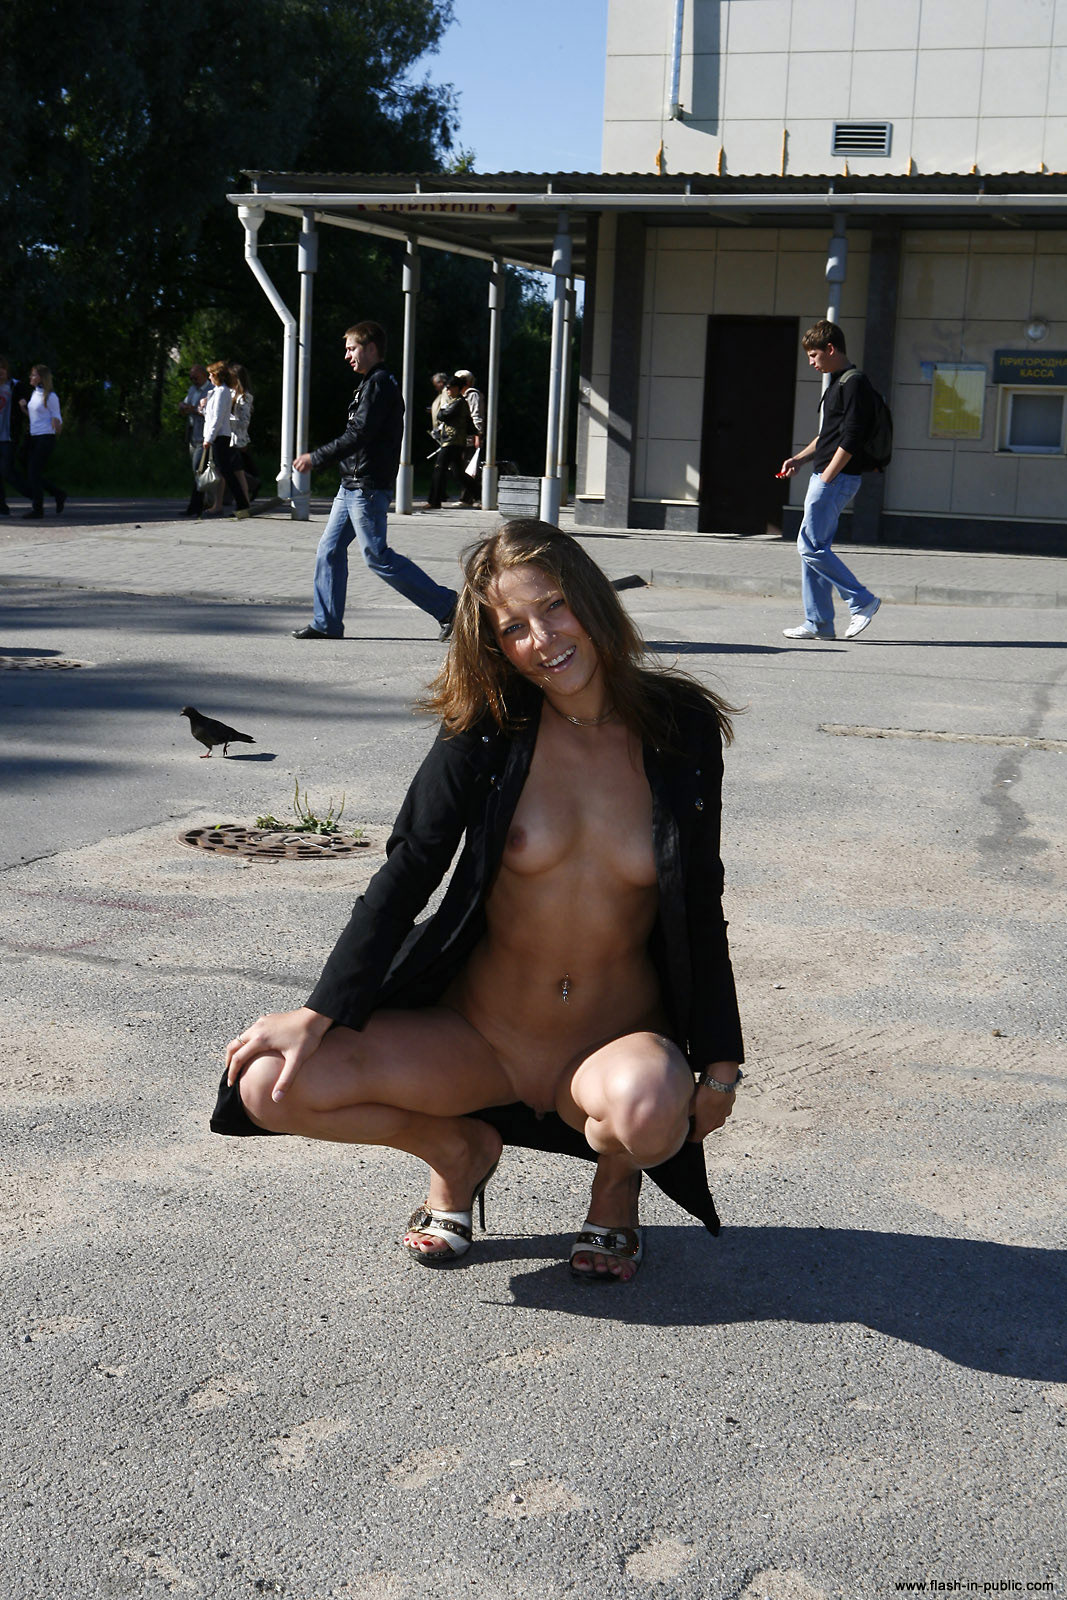 yanina-m-nude-walk-around-the-town-flash-in-public-15